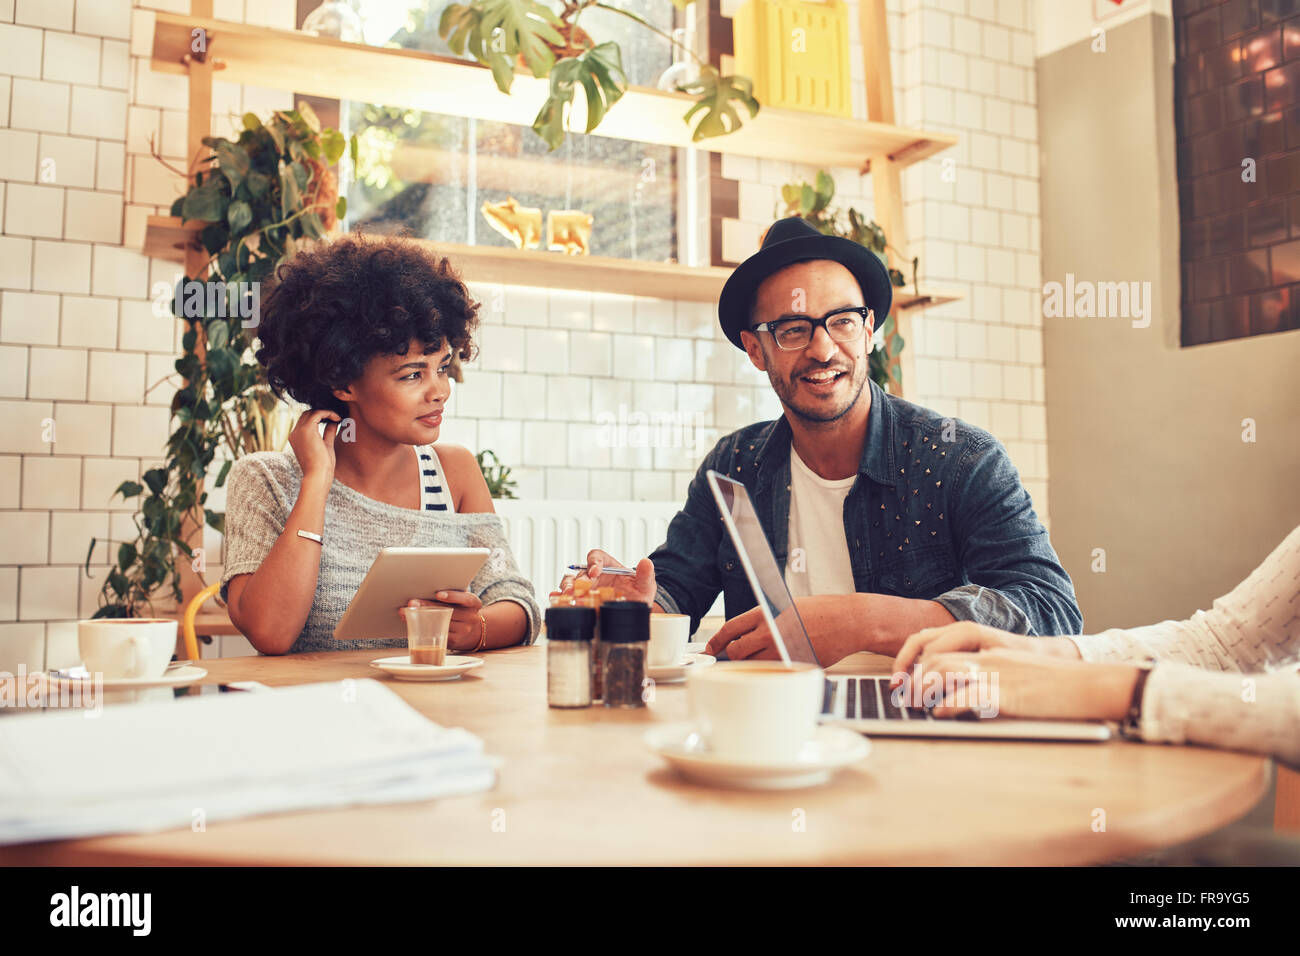 Portrait of happy young people sitting at a cafe with laptop and digital tablet. Group of friends sitting together - Stock Image